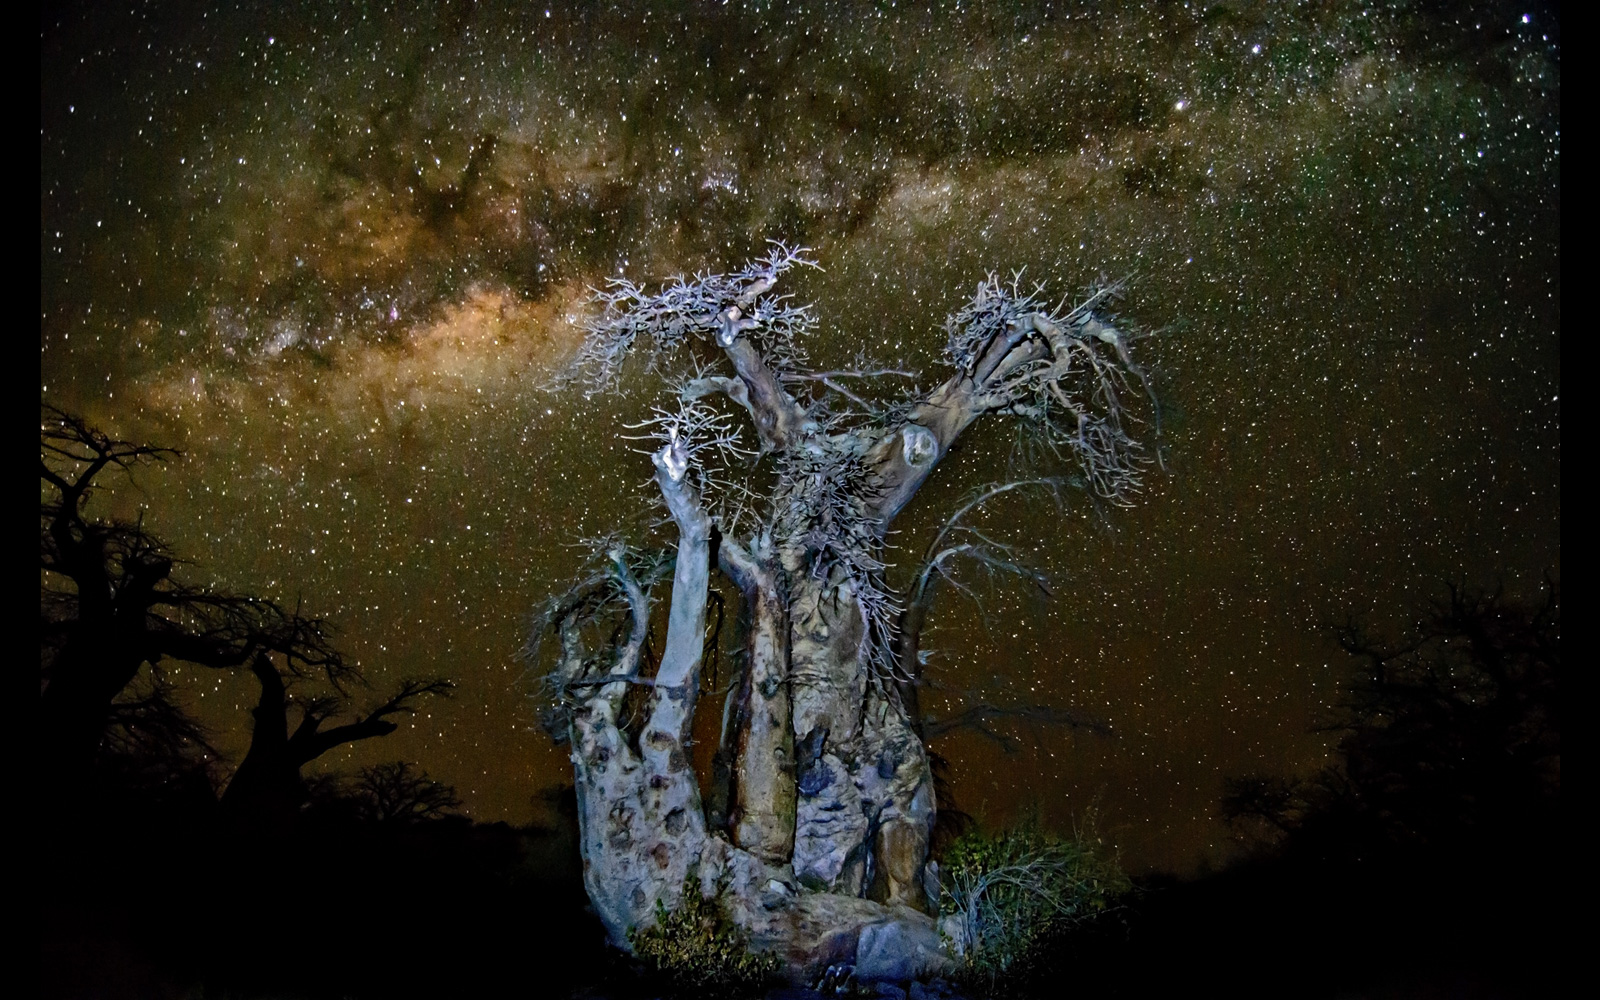 """Baobab night sky"" at Kubu Island in Makgadikgadi Pans National Park, Botswana © Dirk Theron"